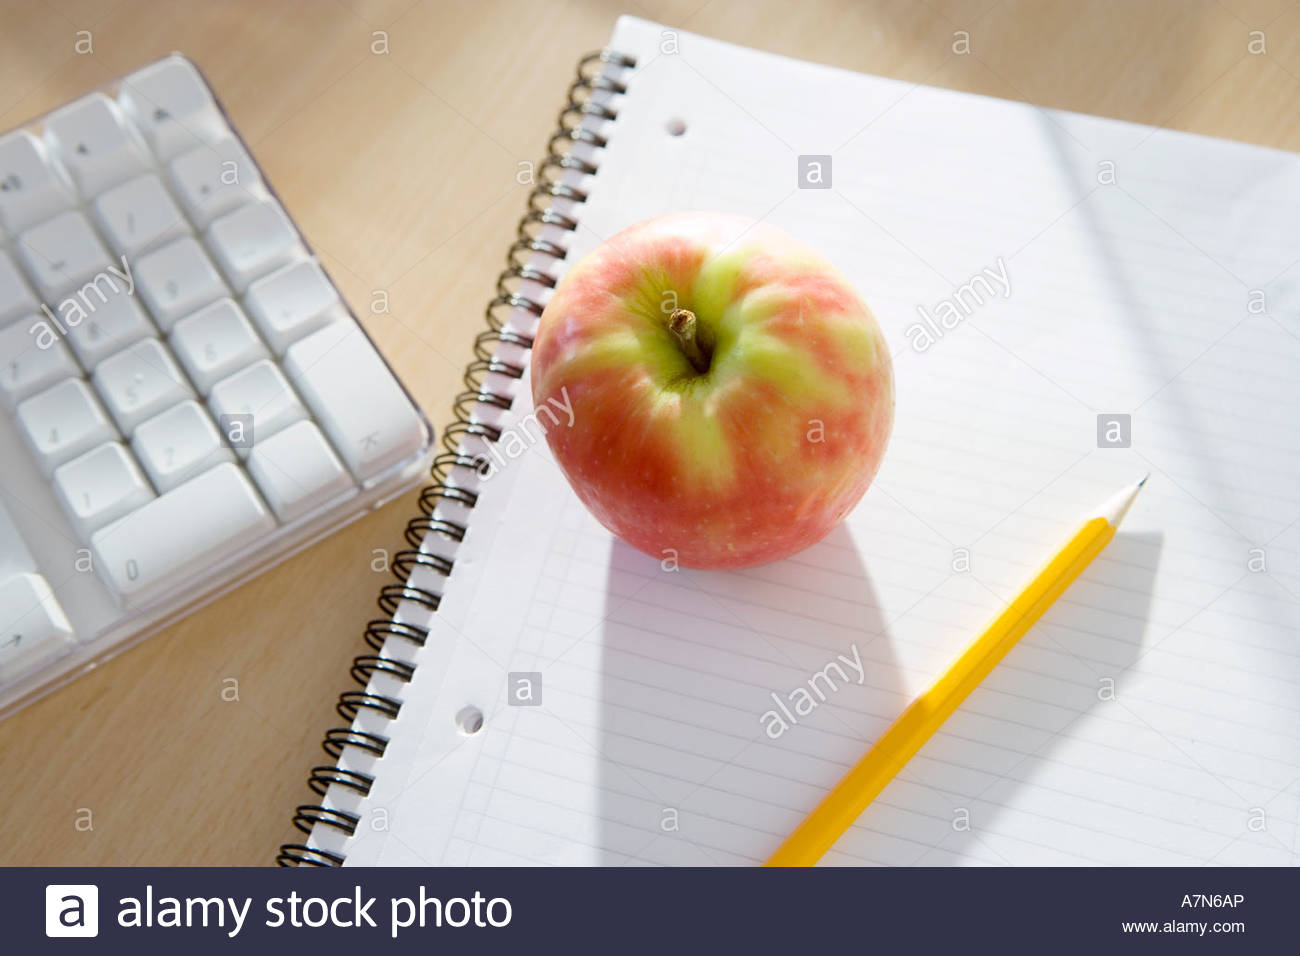 apple notepad and pencil